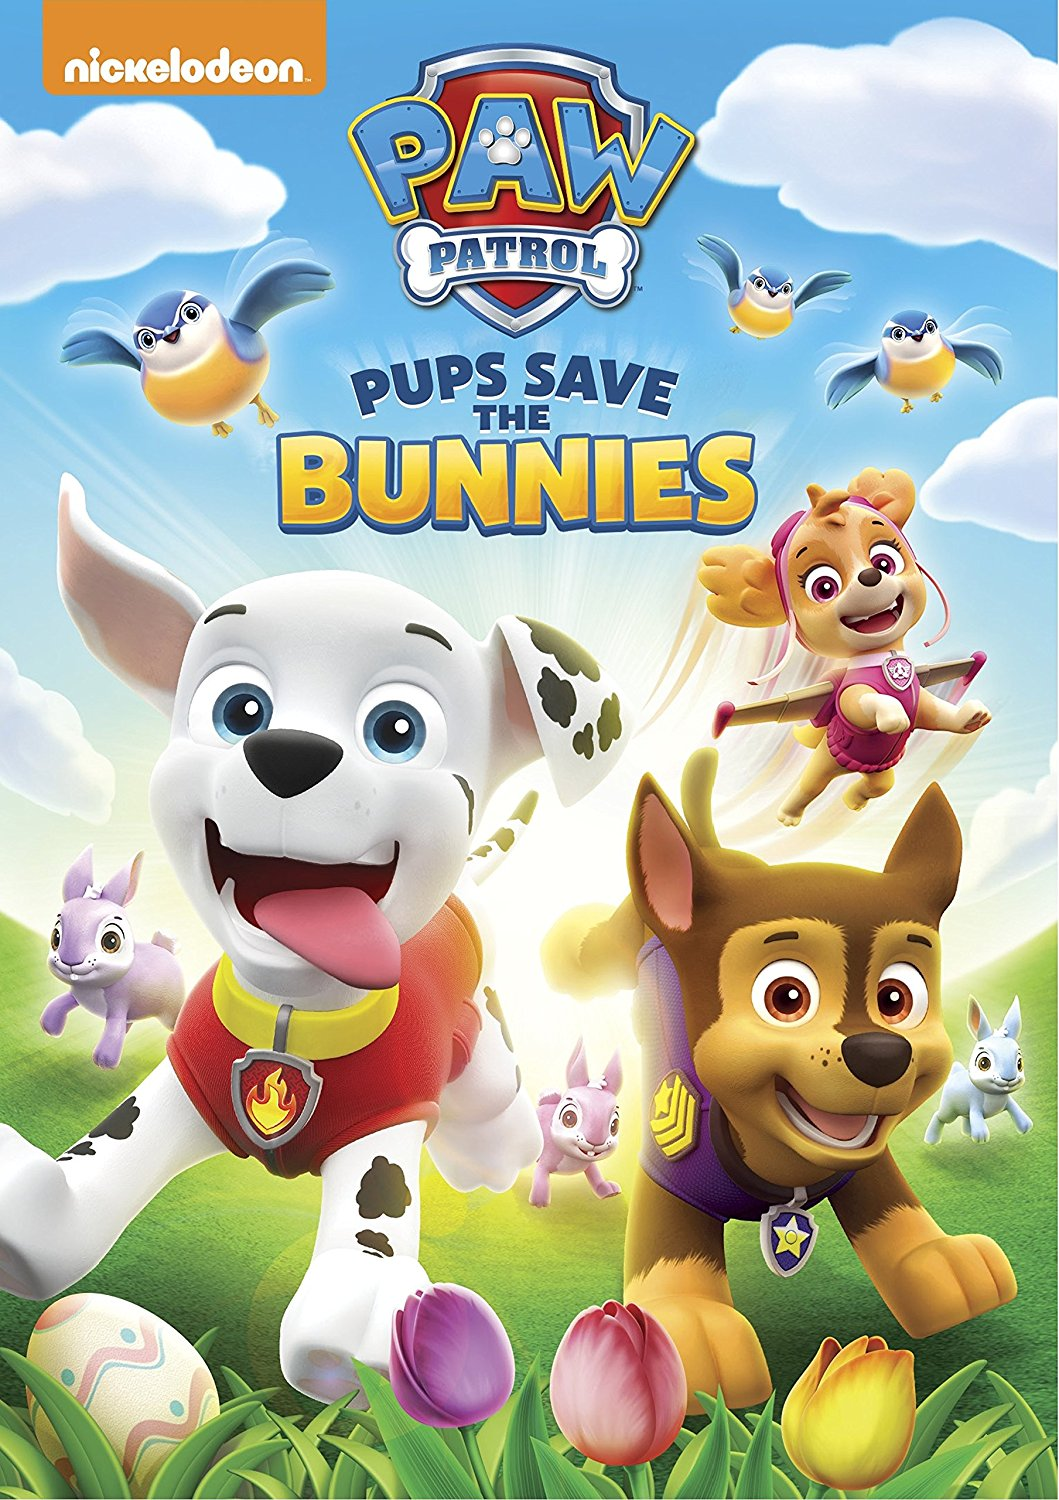 Image result for Paw patrol the pups save the bunnies